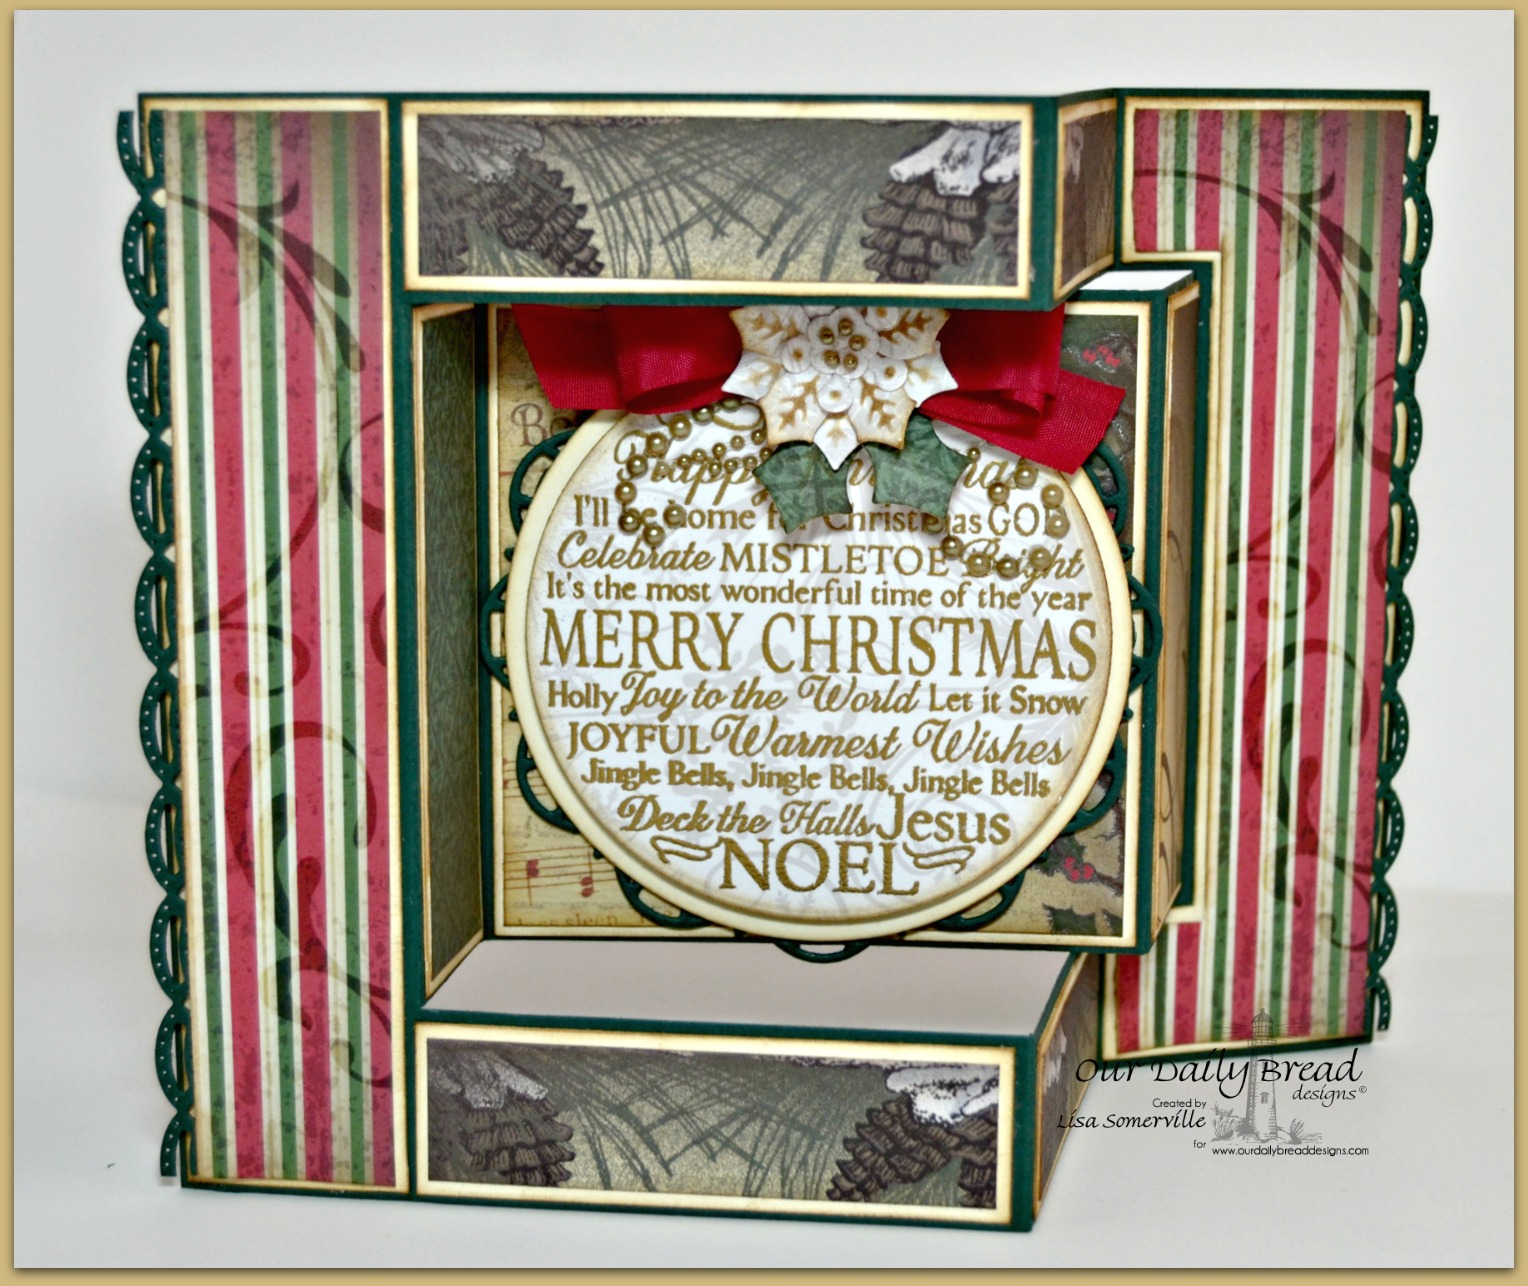 Stamps - Our Daily Bread Designs Noel Ornament, ODBD Custom Peaceful Poinsettias Dies, ODBD Custom Matting Circles Dies, ODBD Custom Circle Ornaments Dies, ODBD Custom Beautiful Borders Dies, ODBD Custom Doily Dies, Christmas Paper Collection 2013